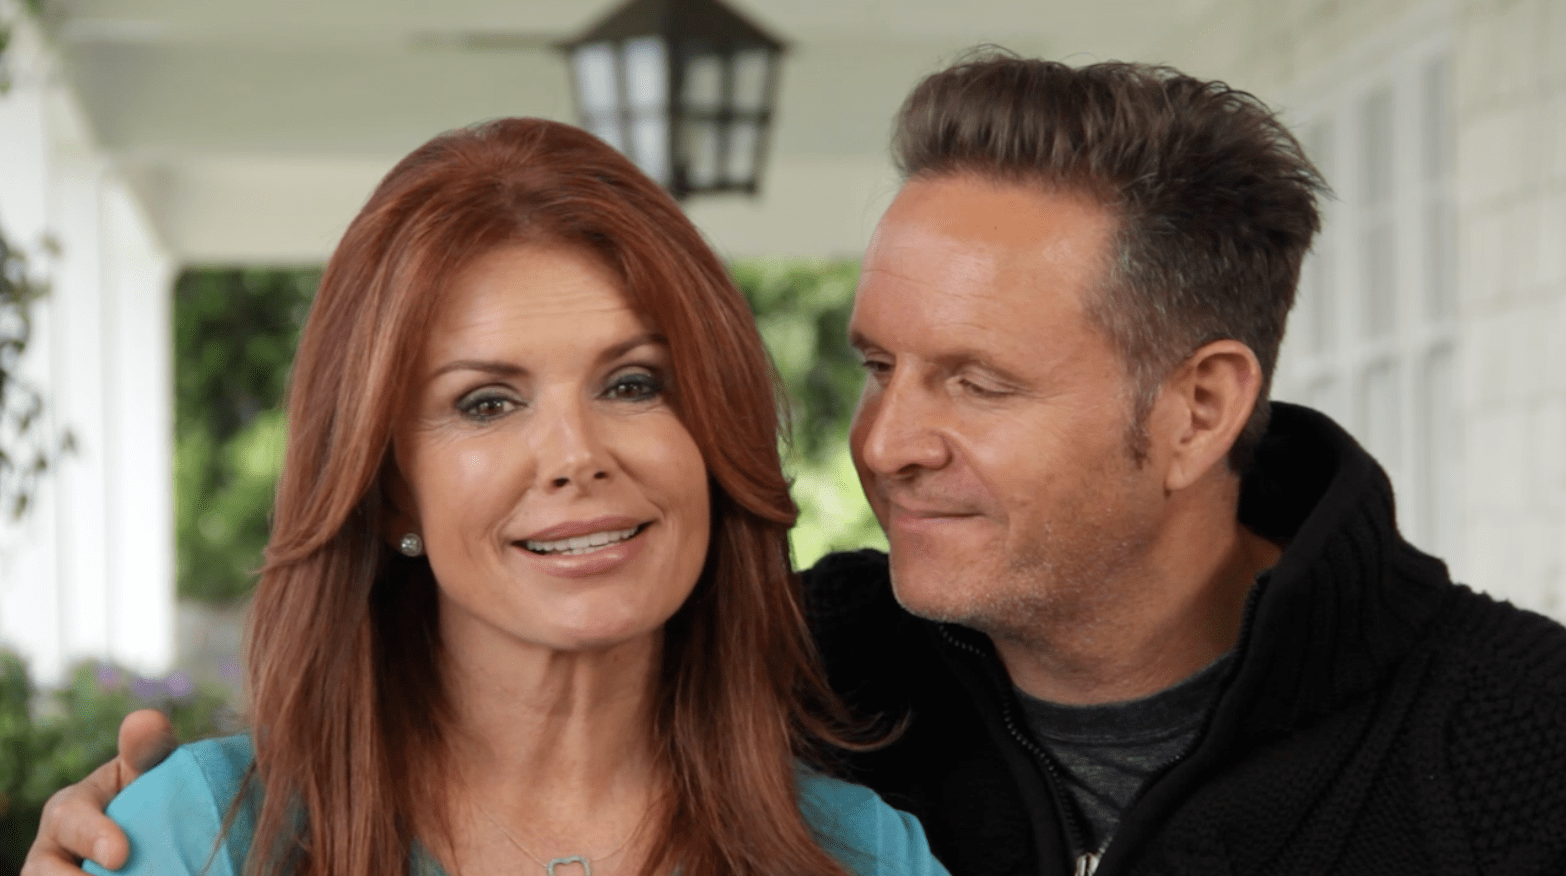 Roma Downey Widescreen